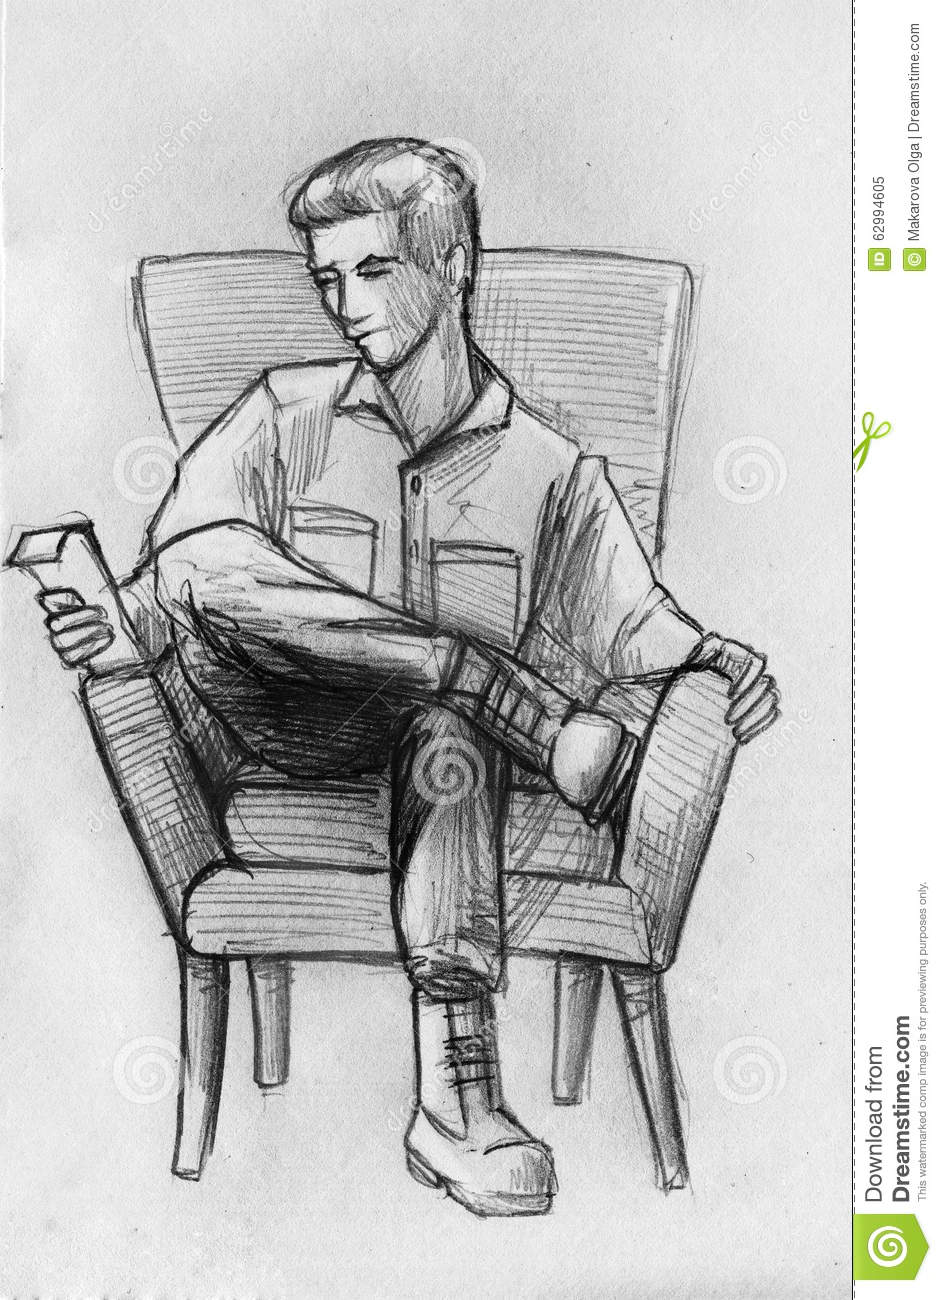 Pencil sketch of a man in armchair